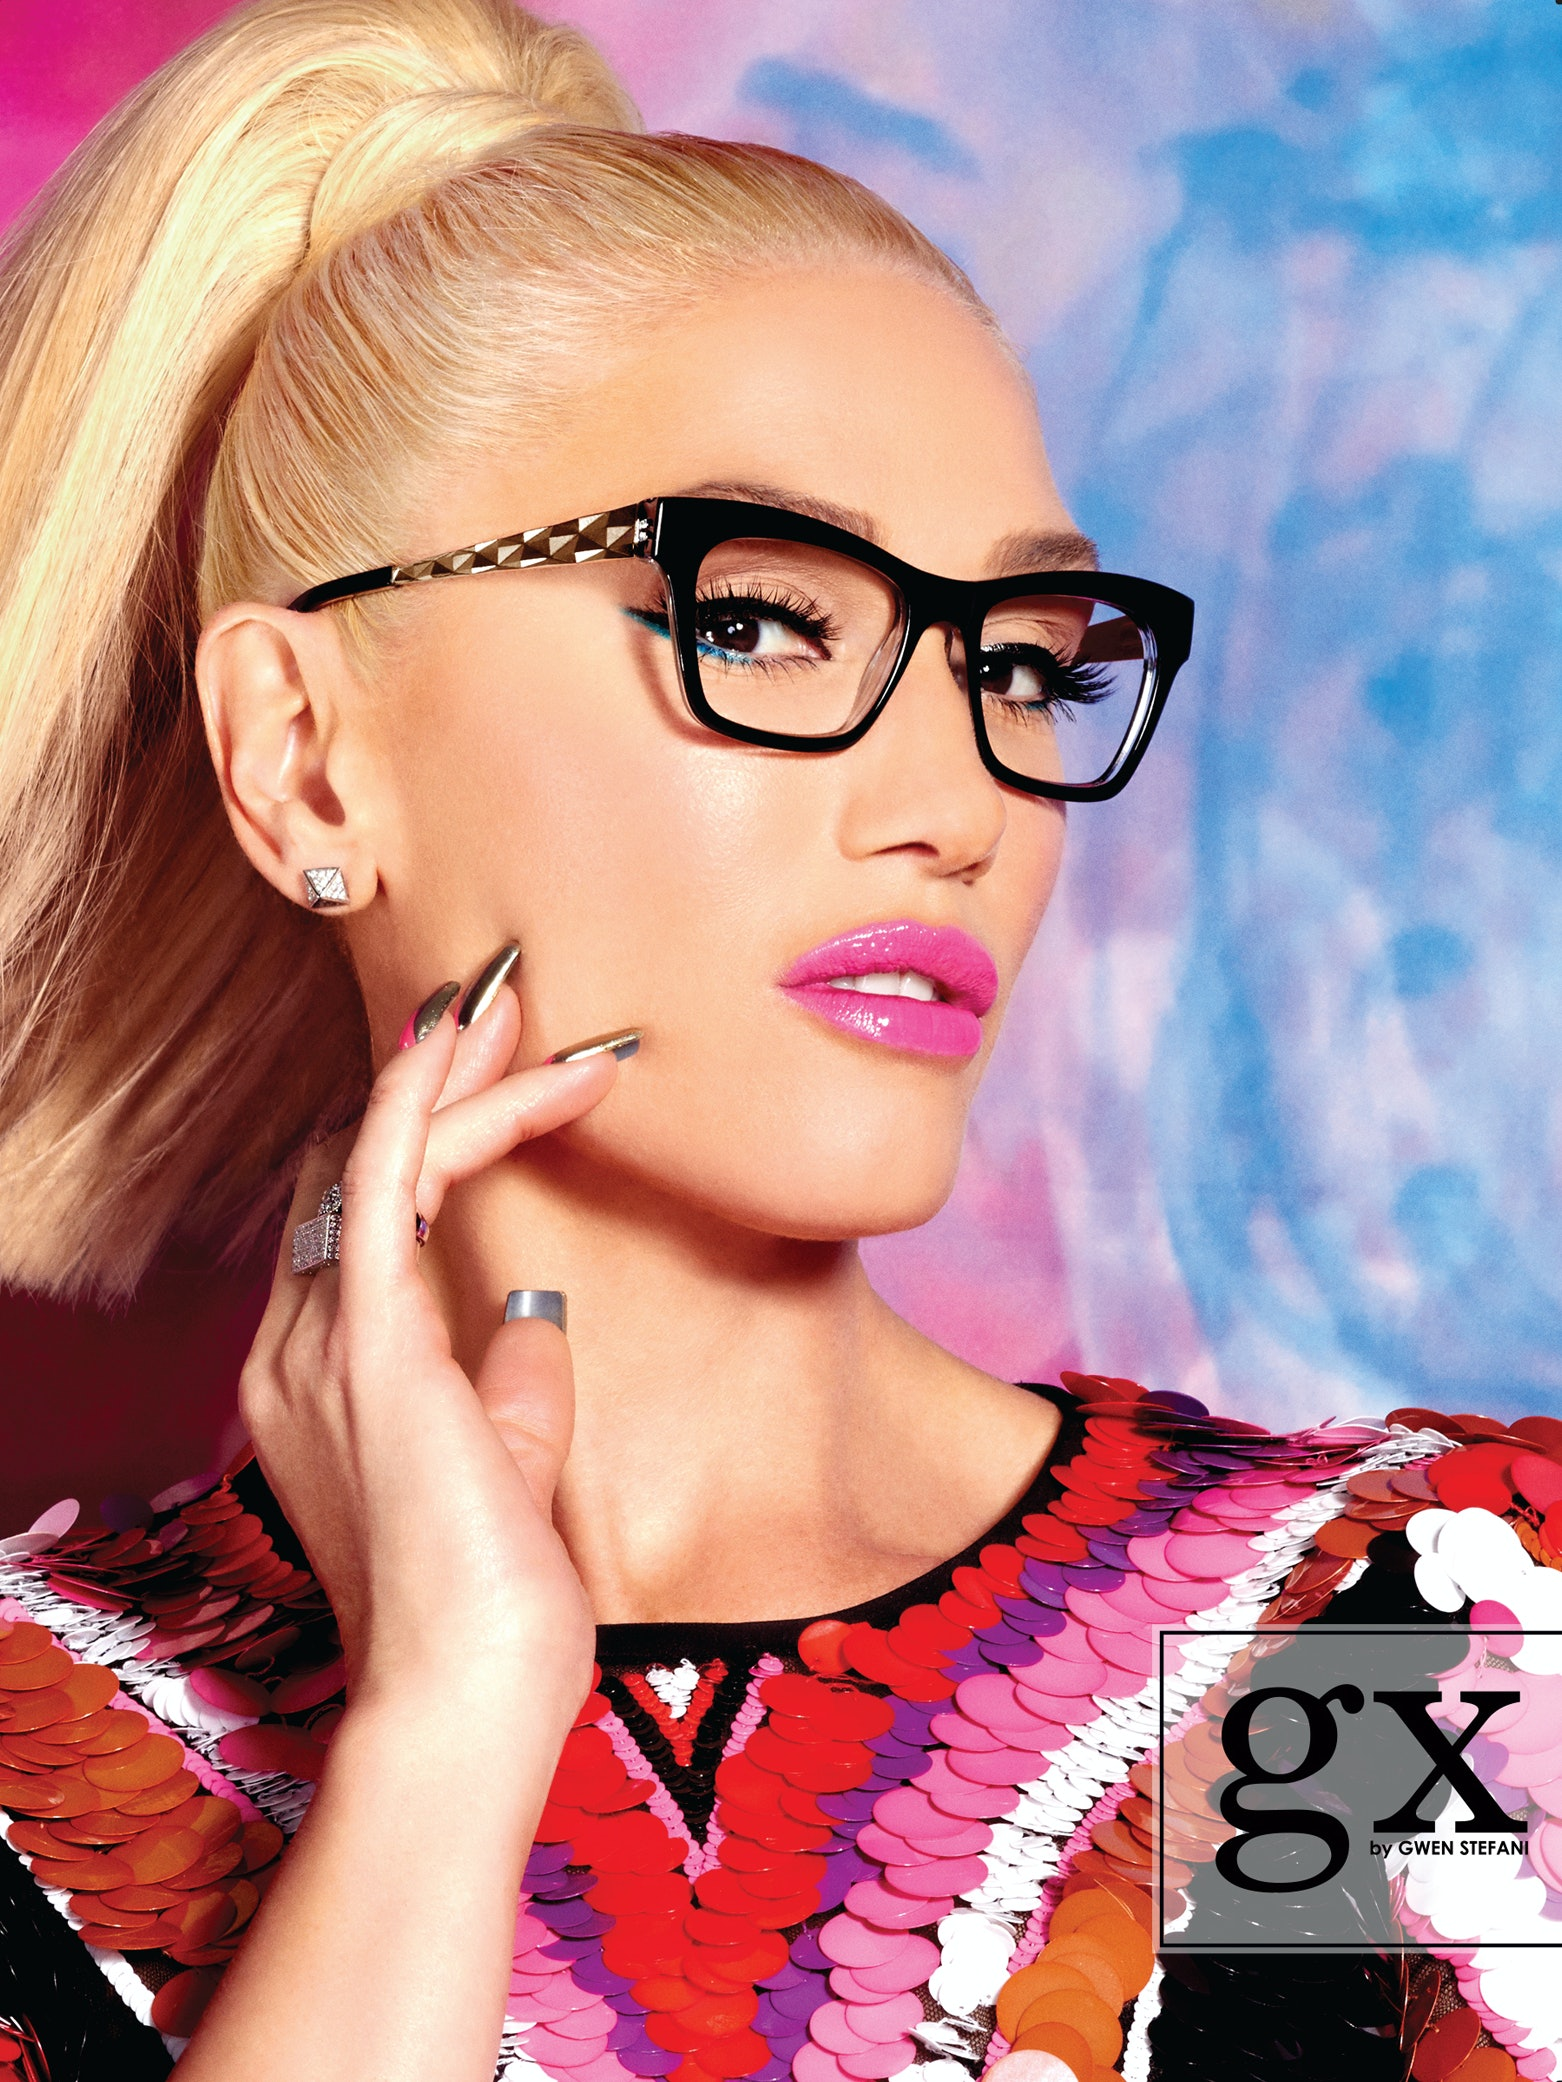 c607f2967c Gwen Stefani s Eyewear Collection Is Inspired By The Glasses She s Always  Wanted To Wear